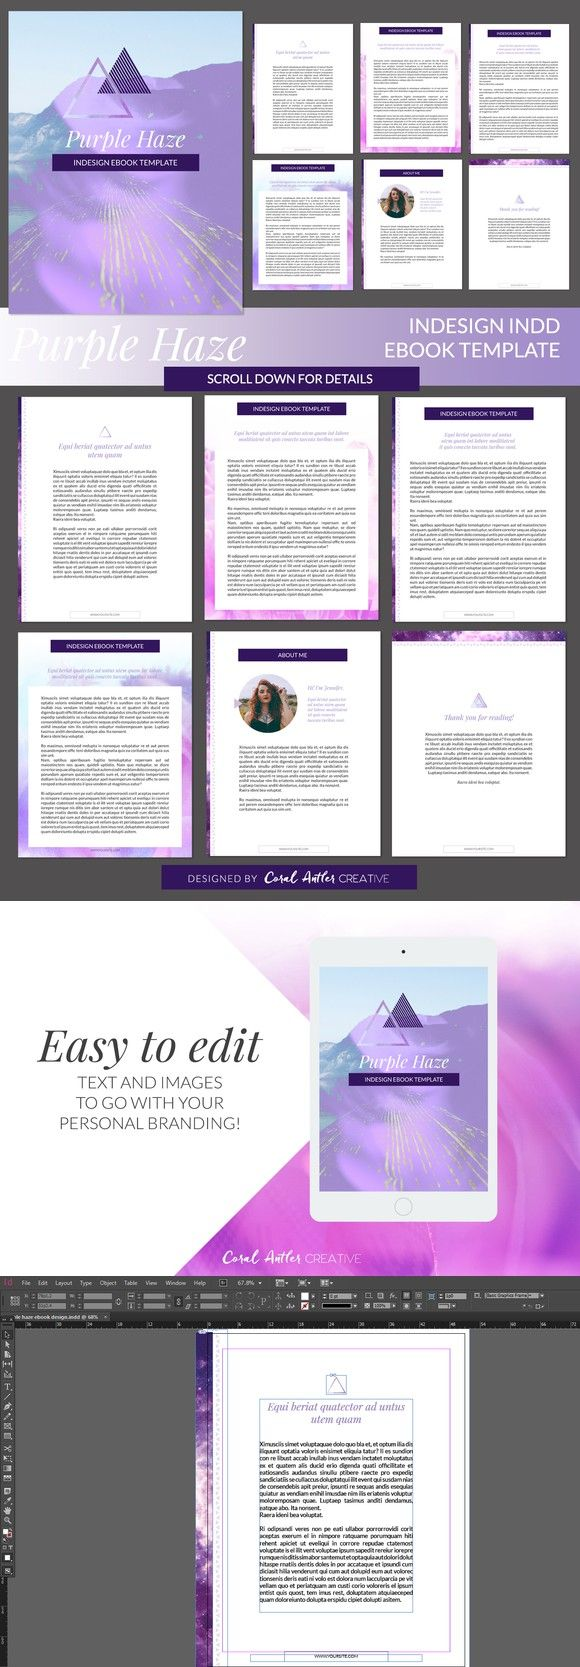 Purple Haze InDesign Ebook Template | Pinterest | Presentation ...